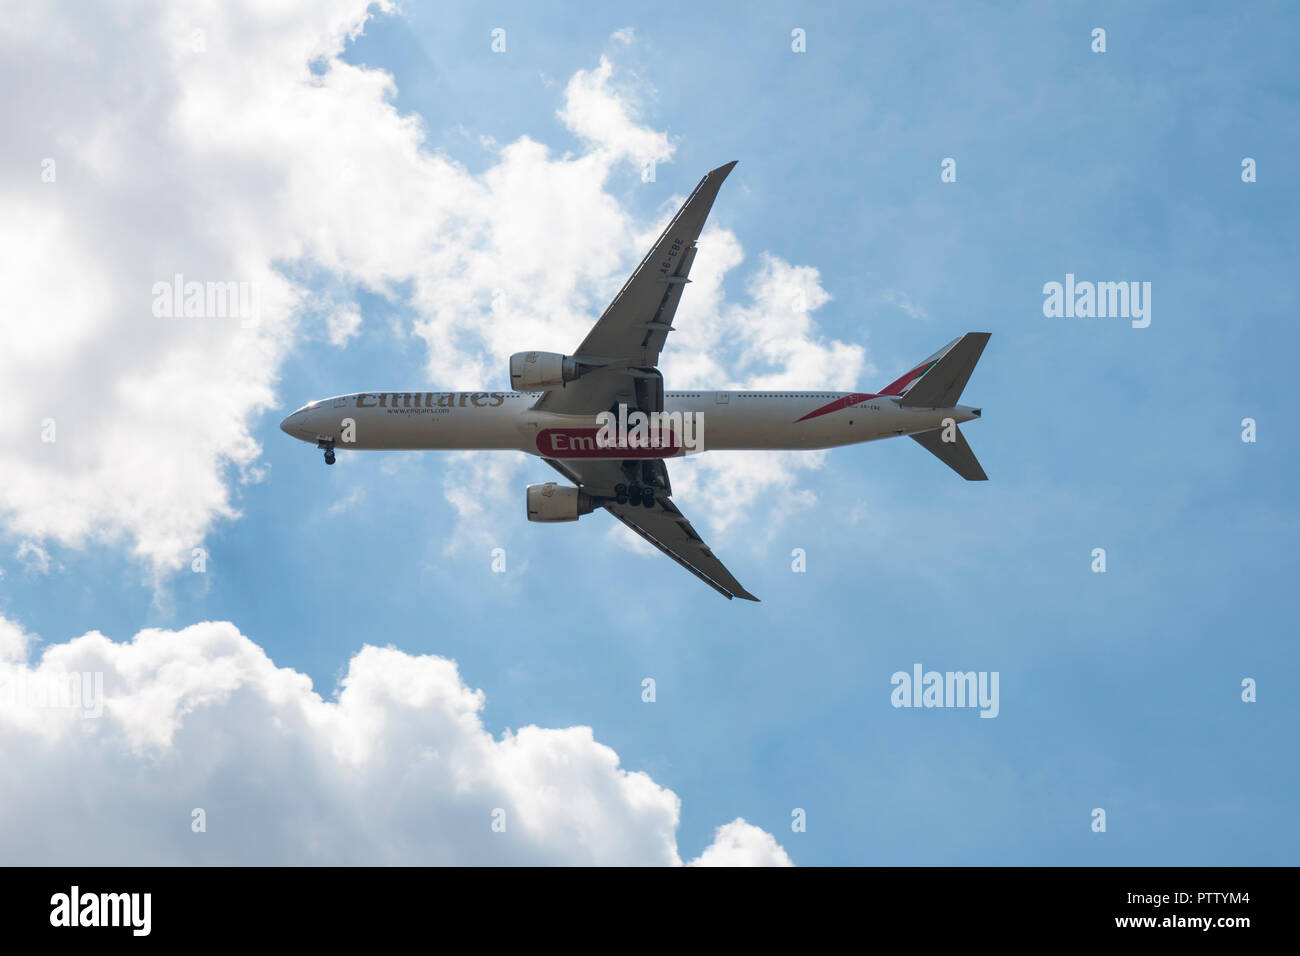 Emirates' Boeing 777 landing against blue sky and clouds Stock Photo